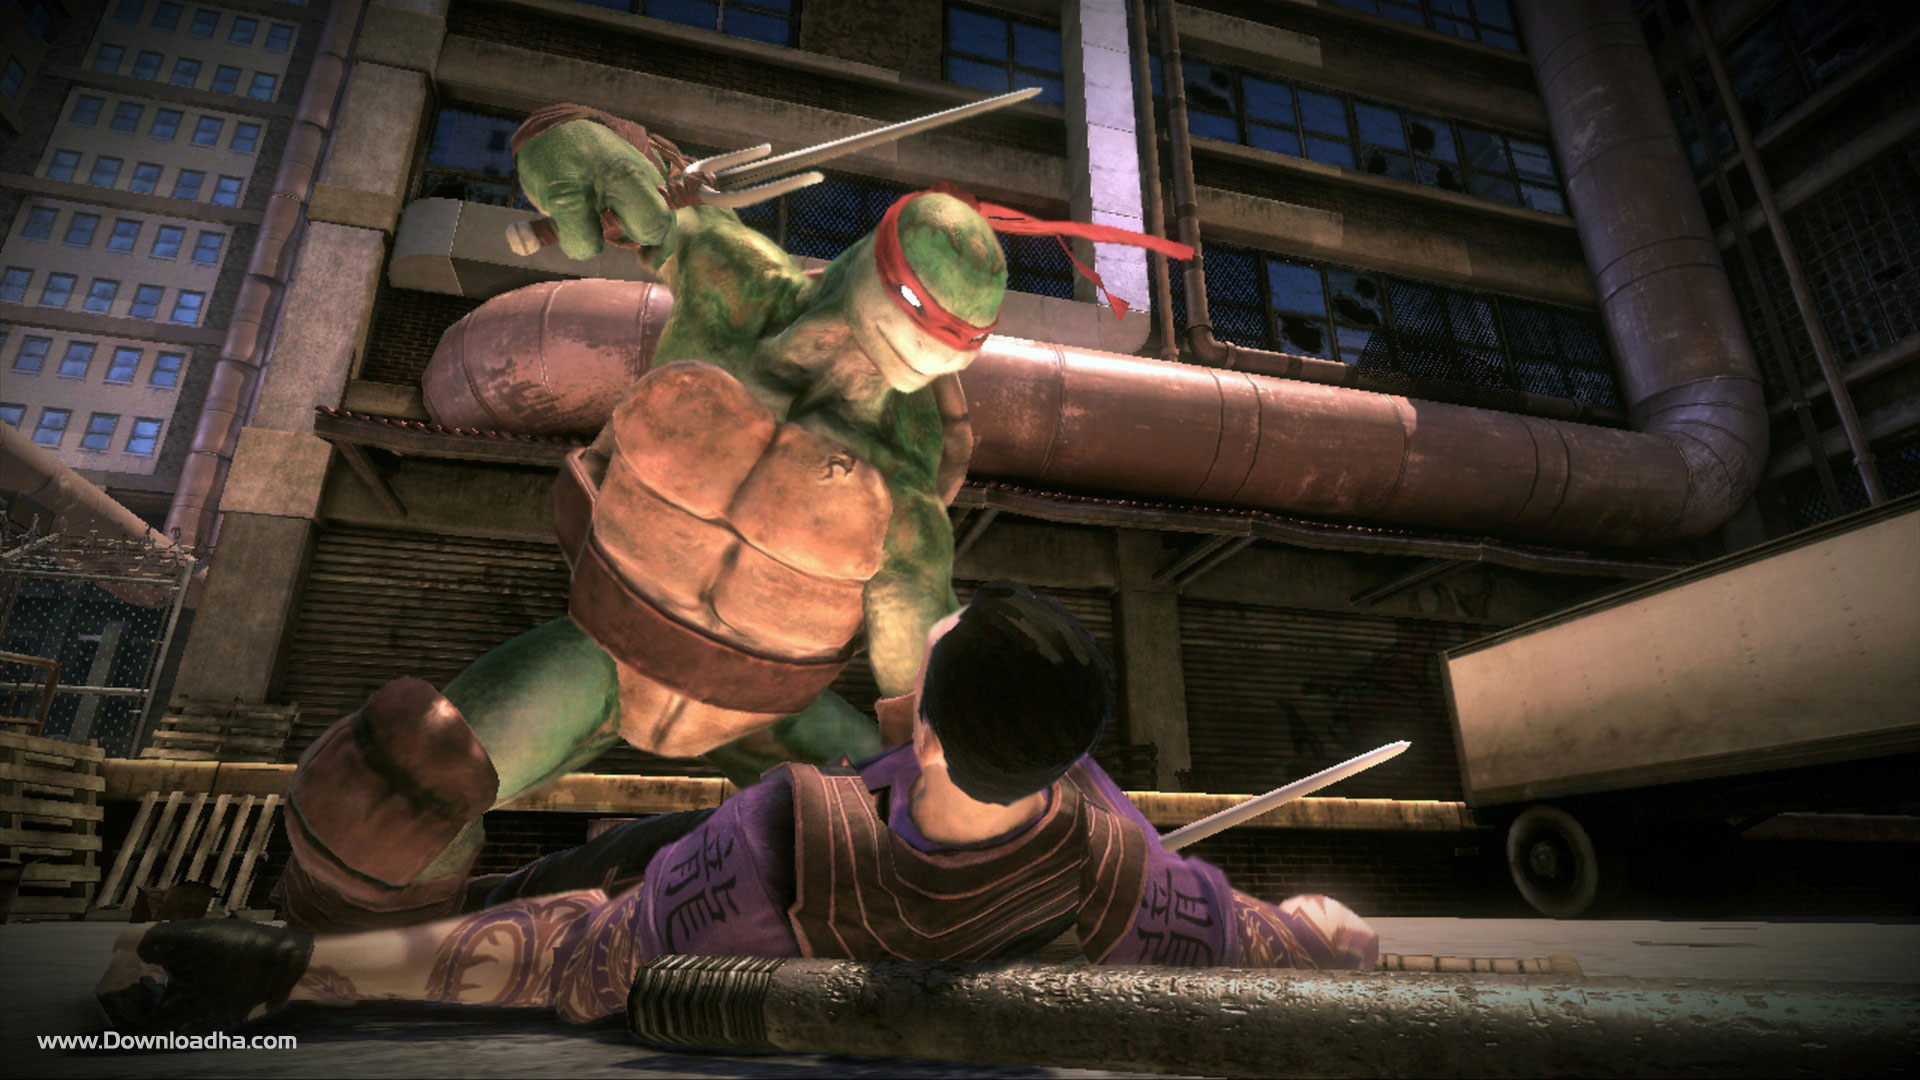 http://img5.downloadha.com/hosein/Game/August%202013/28/TMNT-Out-of-Shadows-screenshots-05-large.jpg